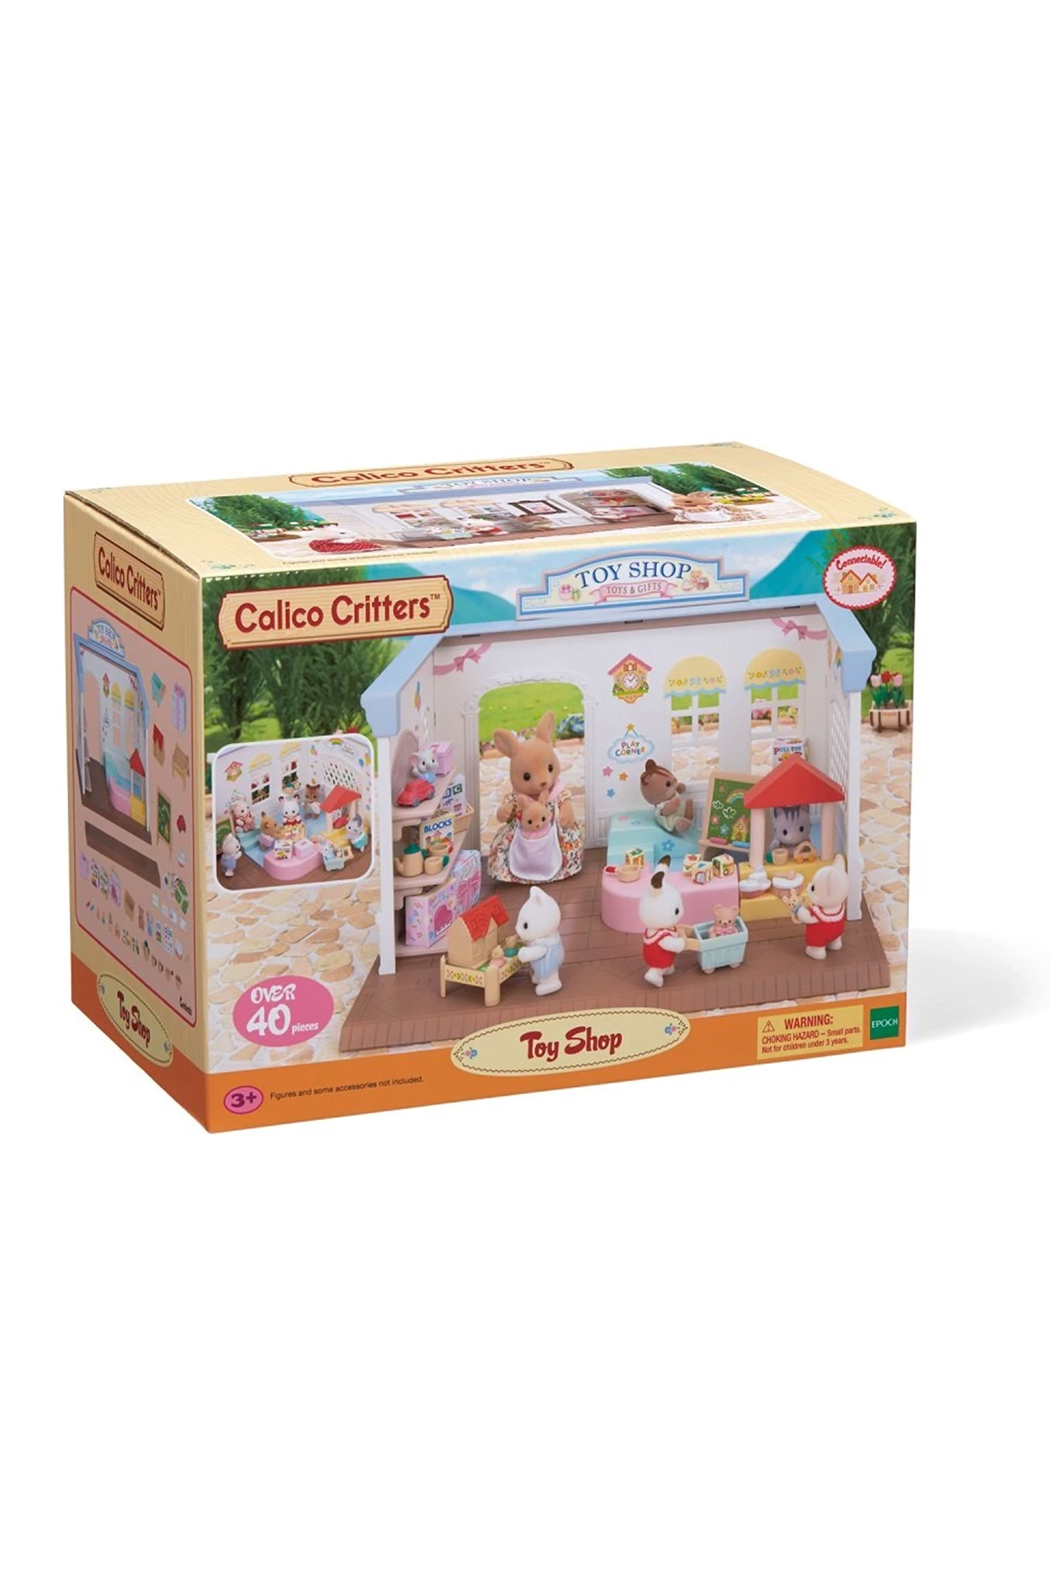 Calico Critters Toy Shop - Main Image